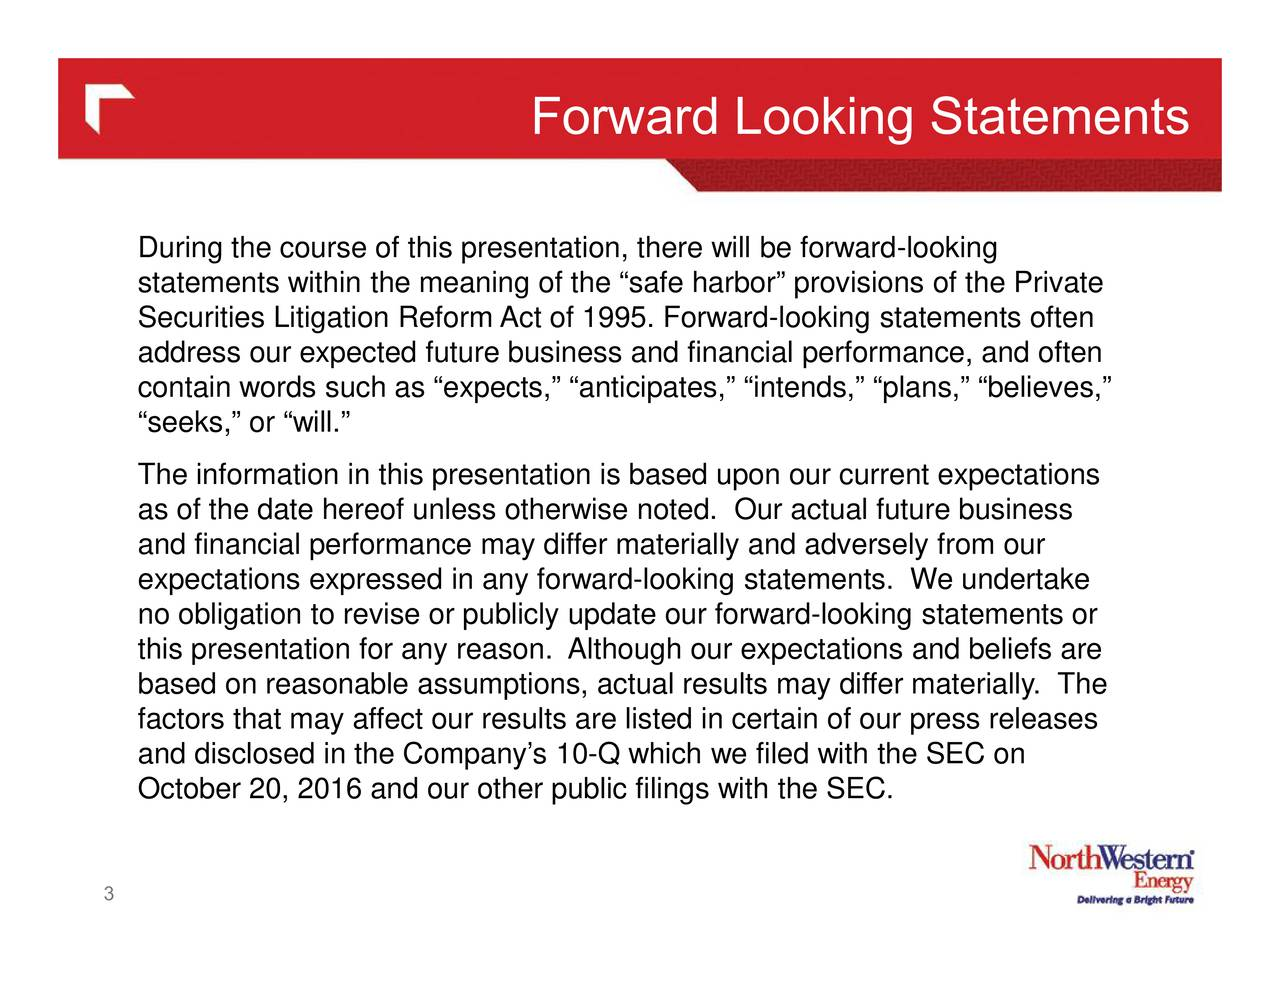 During the course of this presentation, there will be forward-looking statements within the meaning of the safe harbor provisions of the Private Securities Litigation Reform Act of 1995. Forward-looking statements often address our expected future business and financial performance, and often contain words such as expects, anticipates, intends, plans, believes, seeks, or will. The information in this presentation is based upon our current expectations as of the date hereof unless otherwise noted. Our actual future business and financial performance may differ materially and adversely from our expectations expressed in any forward-looking statements. We undertake no obligation to revise or publicly update our forward-looking statements or this presentation for any reason. Although our expectations and beliefs are based on reasonable assumptions, actual results may differ materially. The factors that may affect our results are listed in certain of our press releases and disclosed in the Companys 10-Q which we filed with the SEC on October 20, 2016 and our other public filings with the SEC. 3